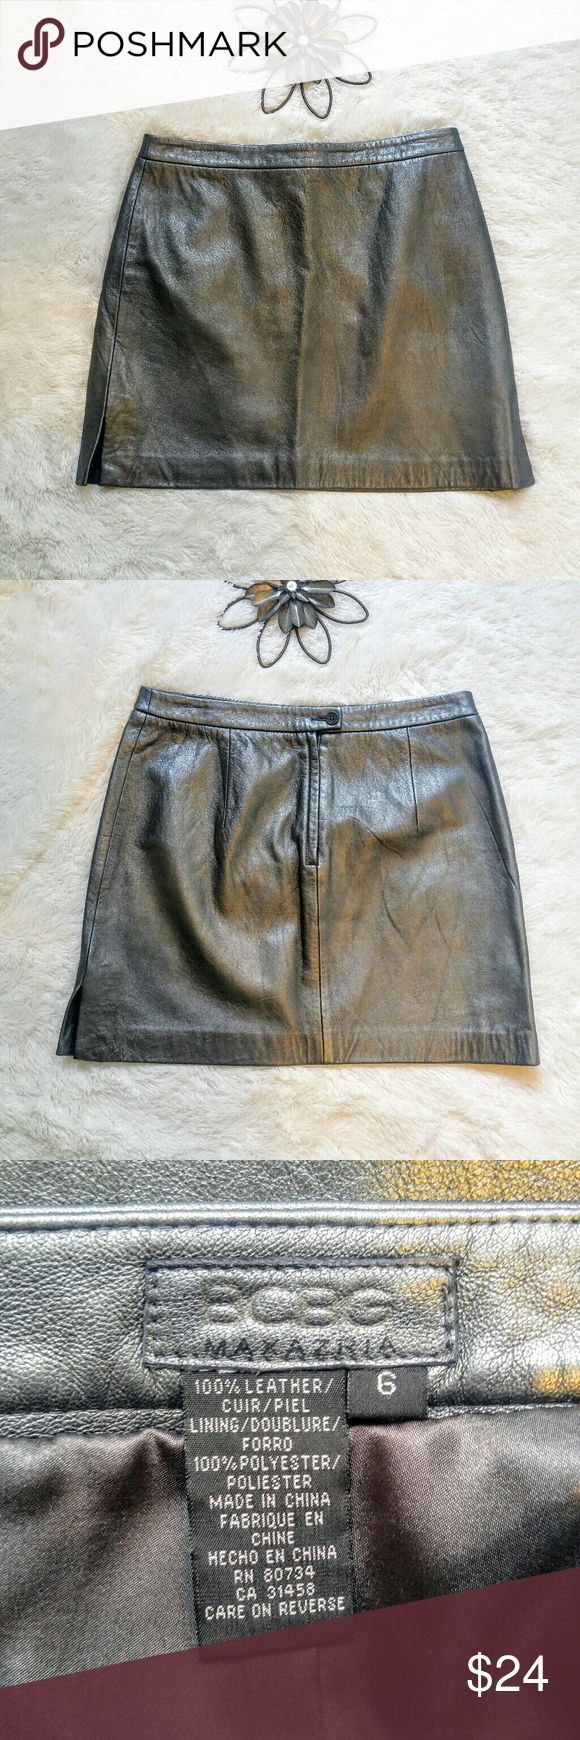 BCBG Metallic Charcoal Leather Skirt size 6 NWOT Real leather skirt in charcoal metallic color. Button/zip back. No holes stains or flaws.  Super fast same day or next business day shipping. Offers always welcomed. Thanks for looking! BCBGMaxAzria Skirts Mini